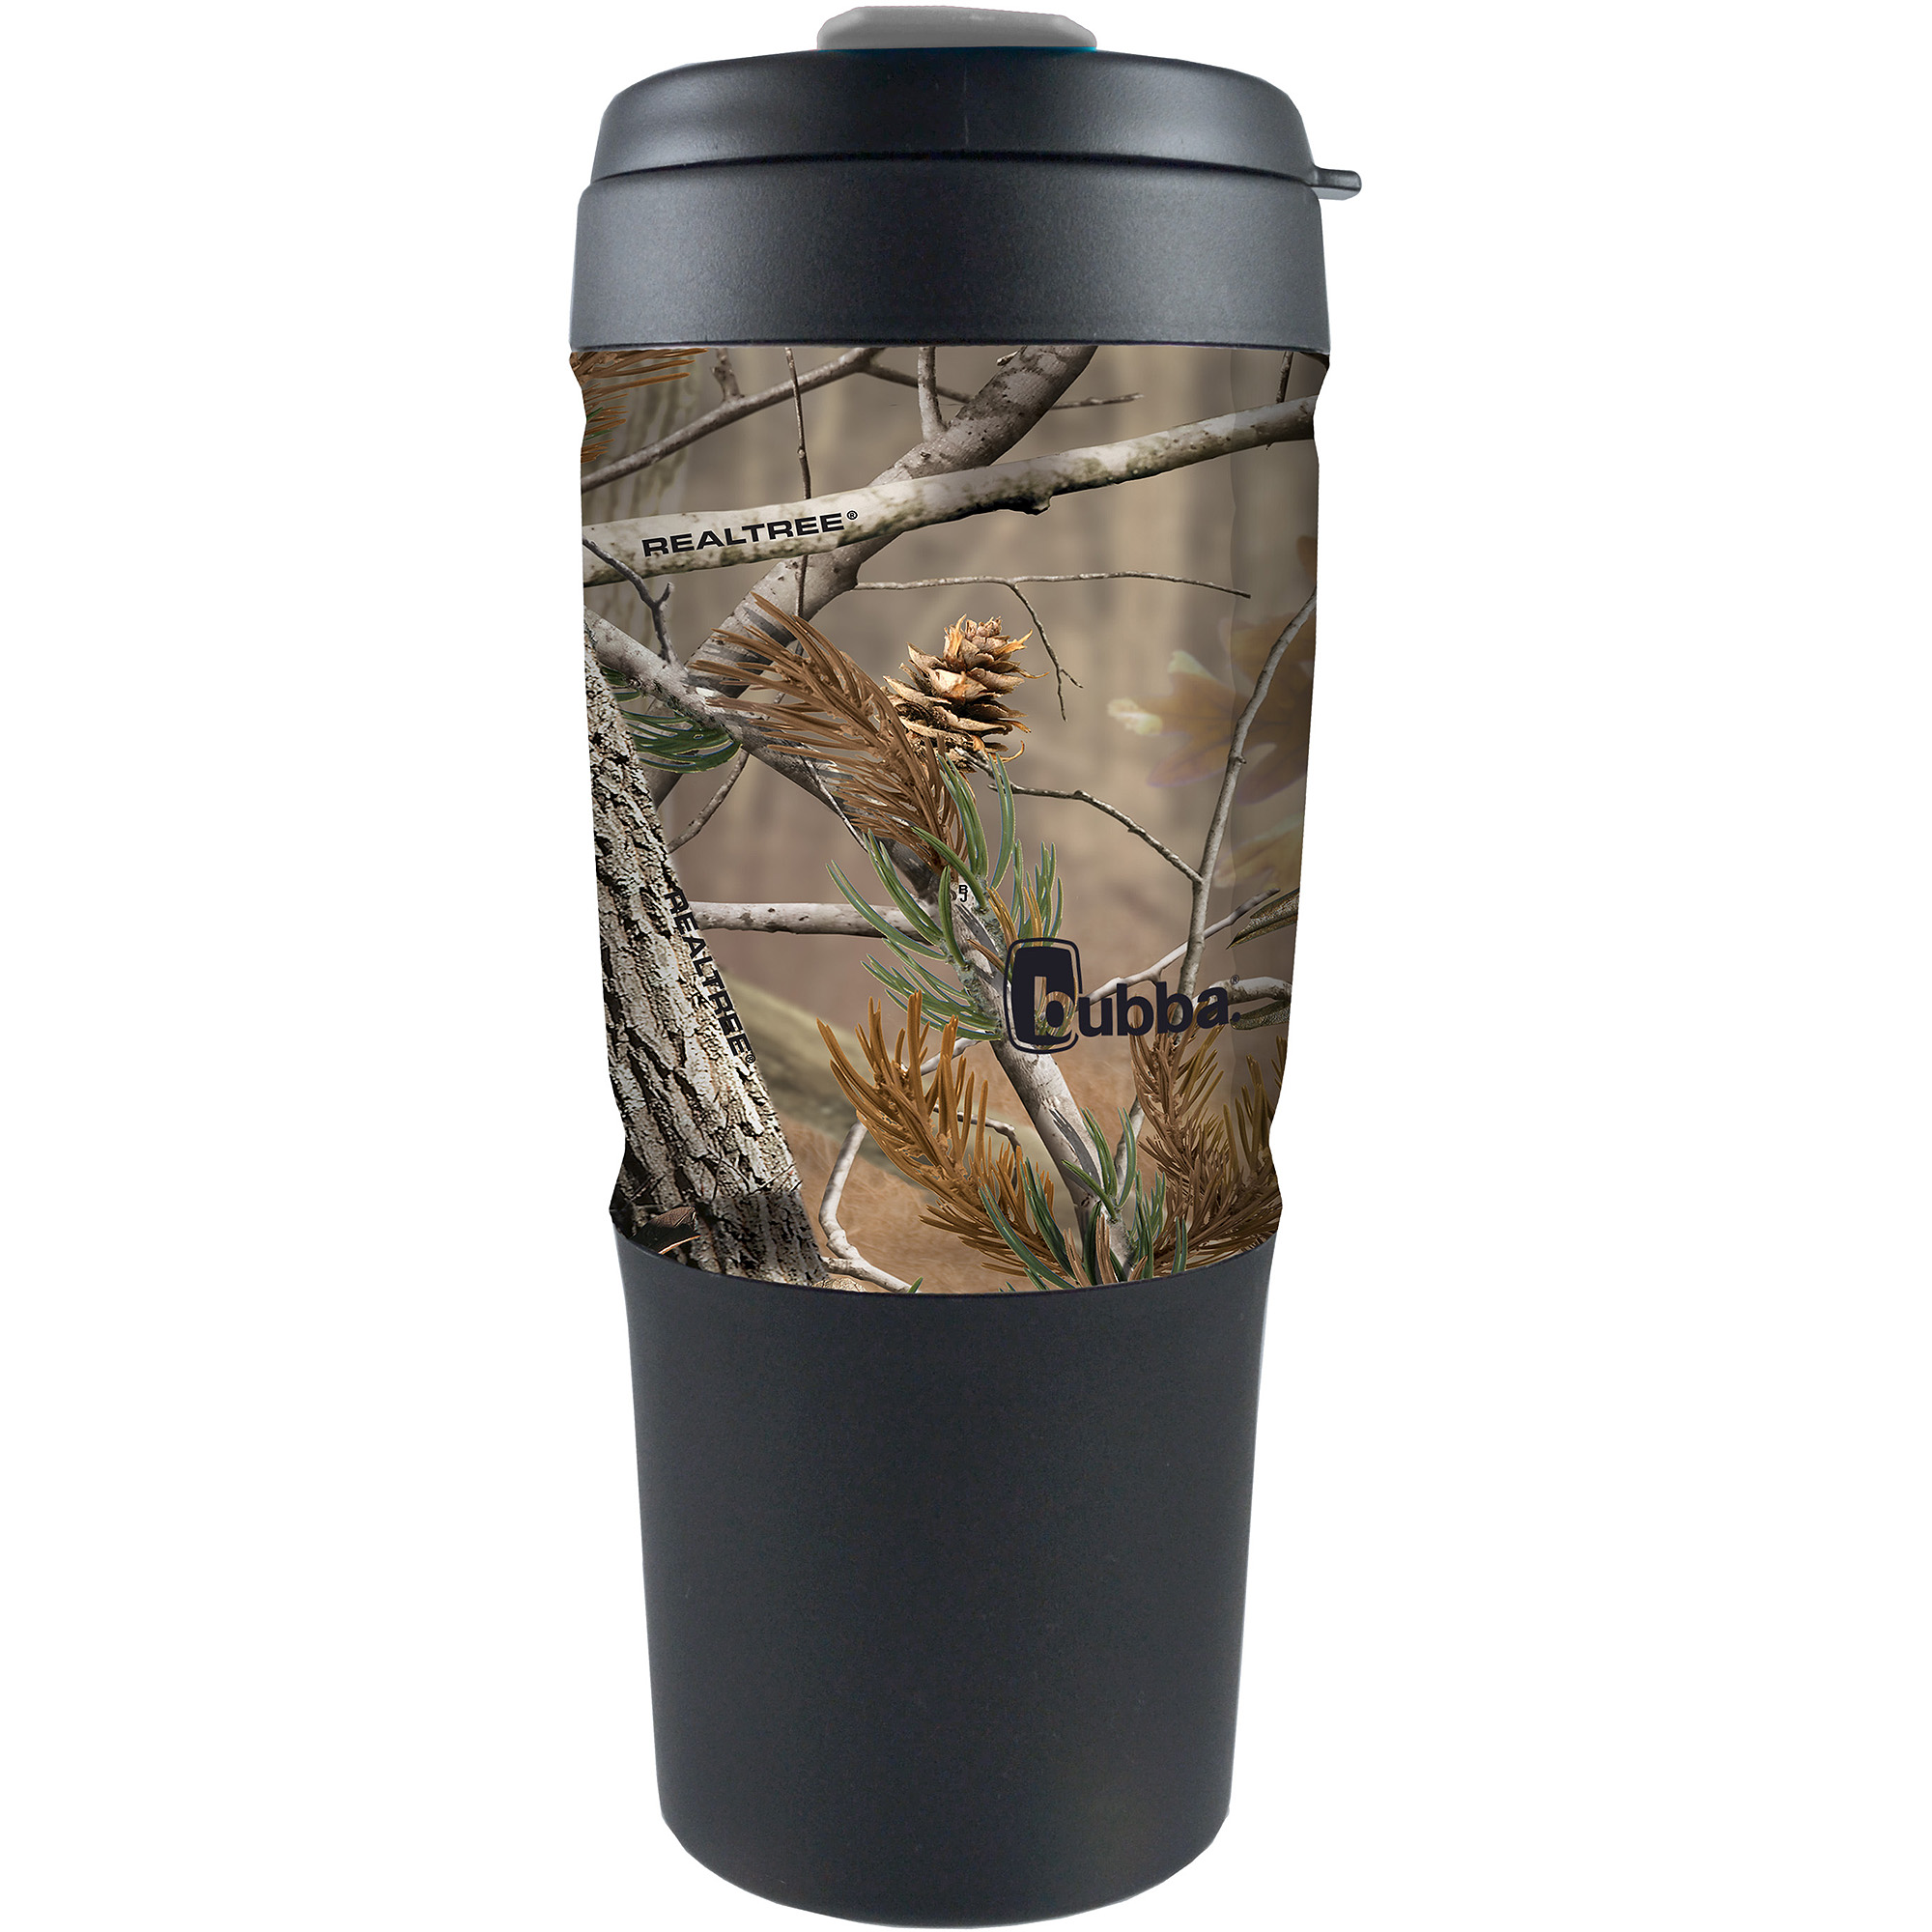 Bubba 24-Ounce Tumbler, Realtree Camouflage